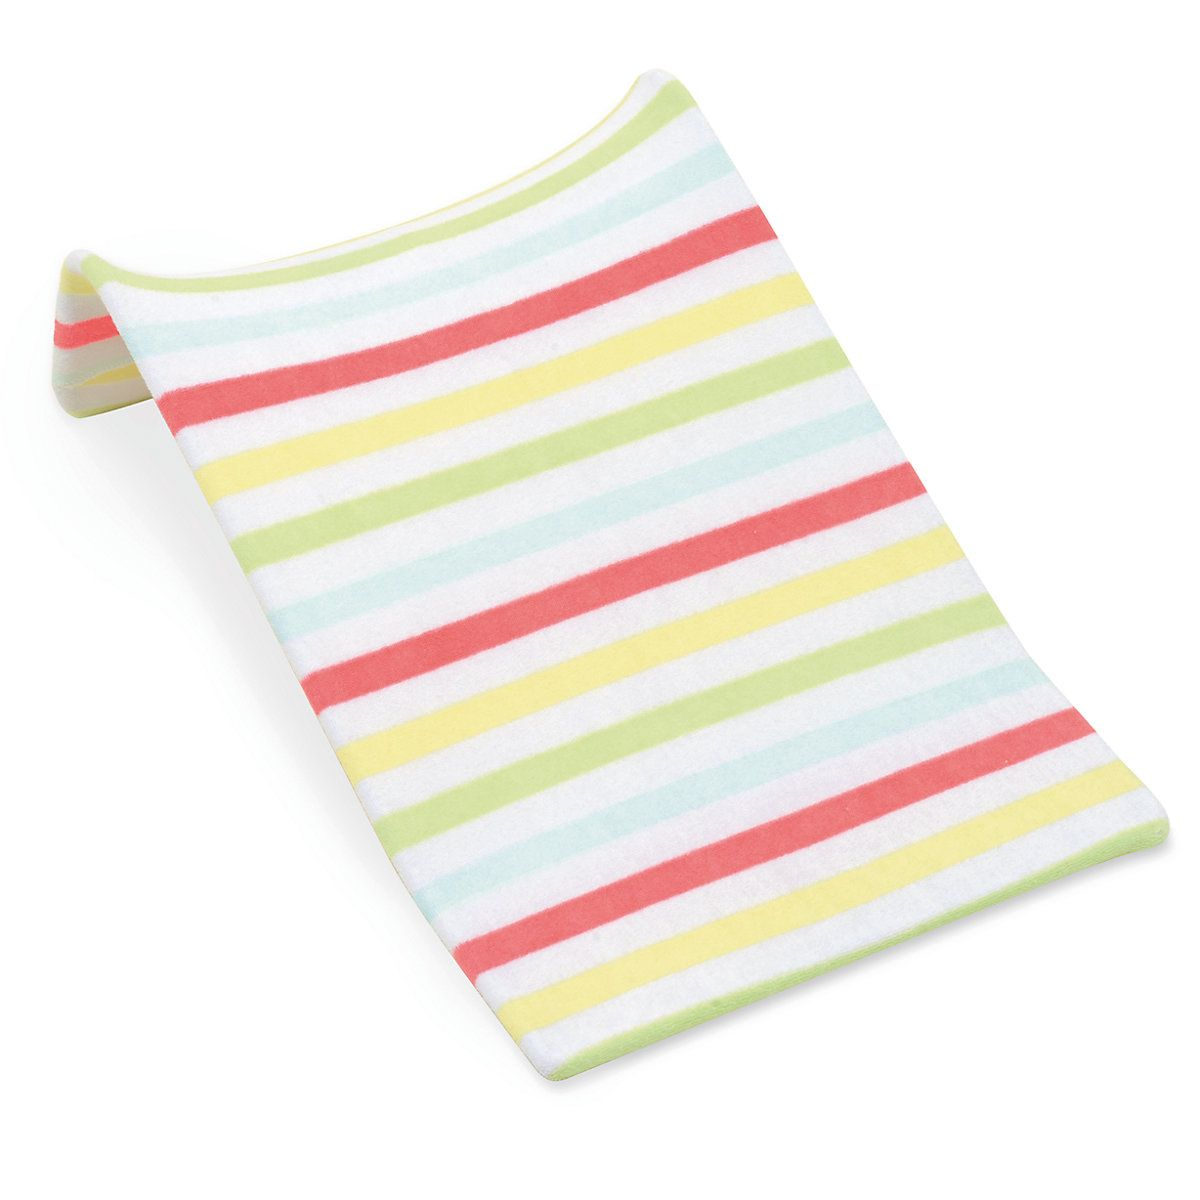 Mothercare Stripy Fabric Bath Support - supports & mats - Mothercare ...